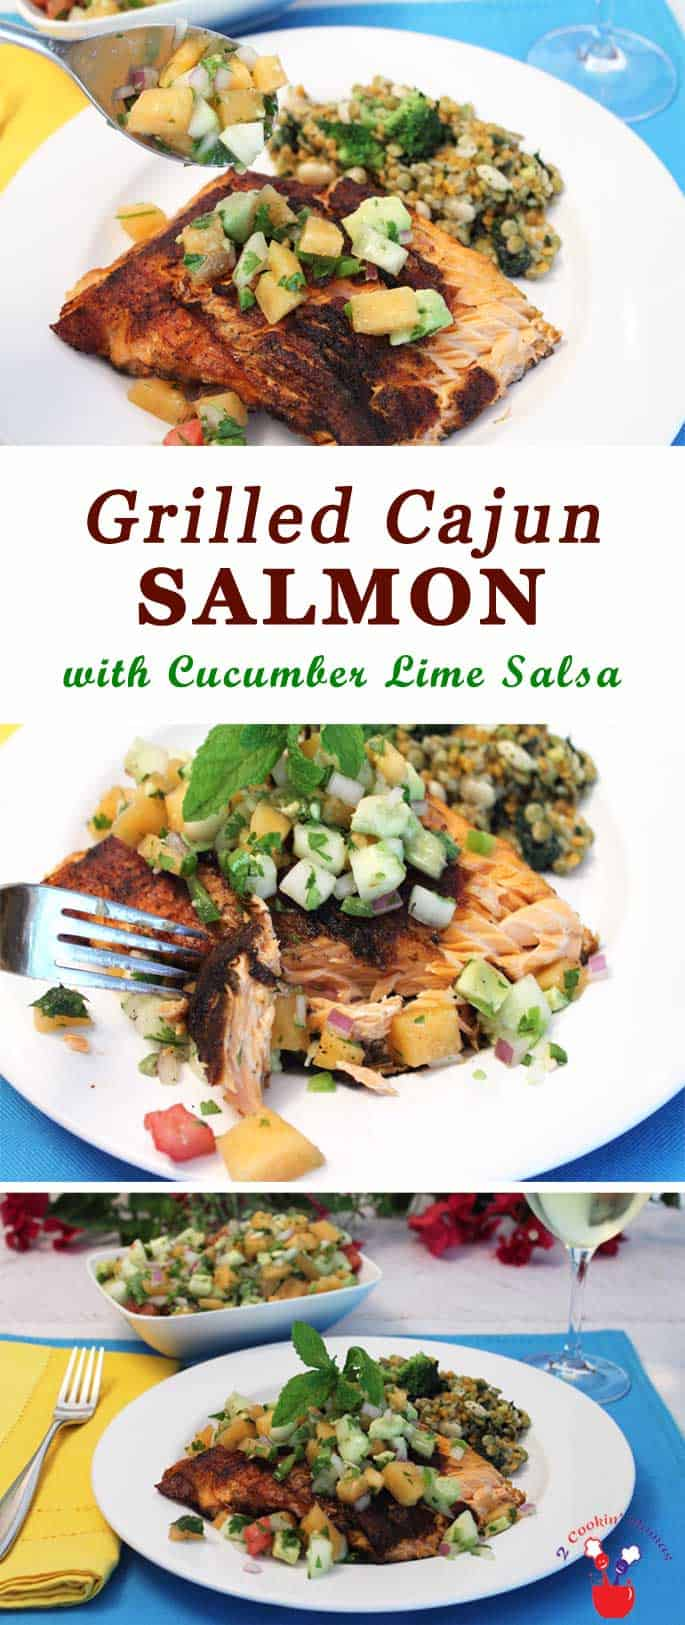 Grilled Cajun Salmon with Cucumber Lime Salsa   2 Cookin Mamas Grilled cajun salmon with cucumber lime salsa is a little bit spicy & a little bit smoky. Top with our fresh cucumber & melon salsa for the perfect pairing of flavors! #recipe